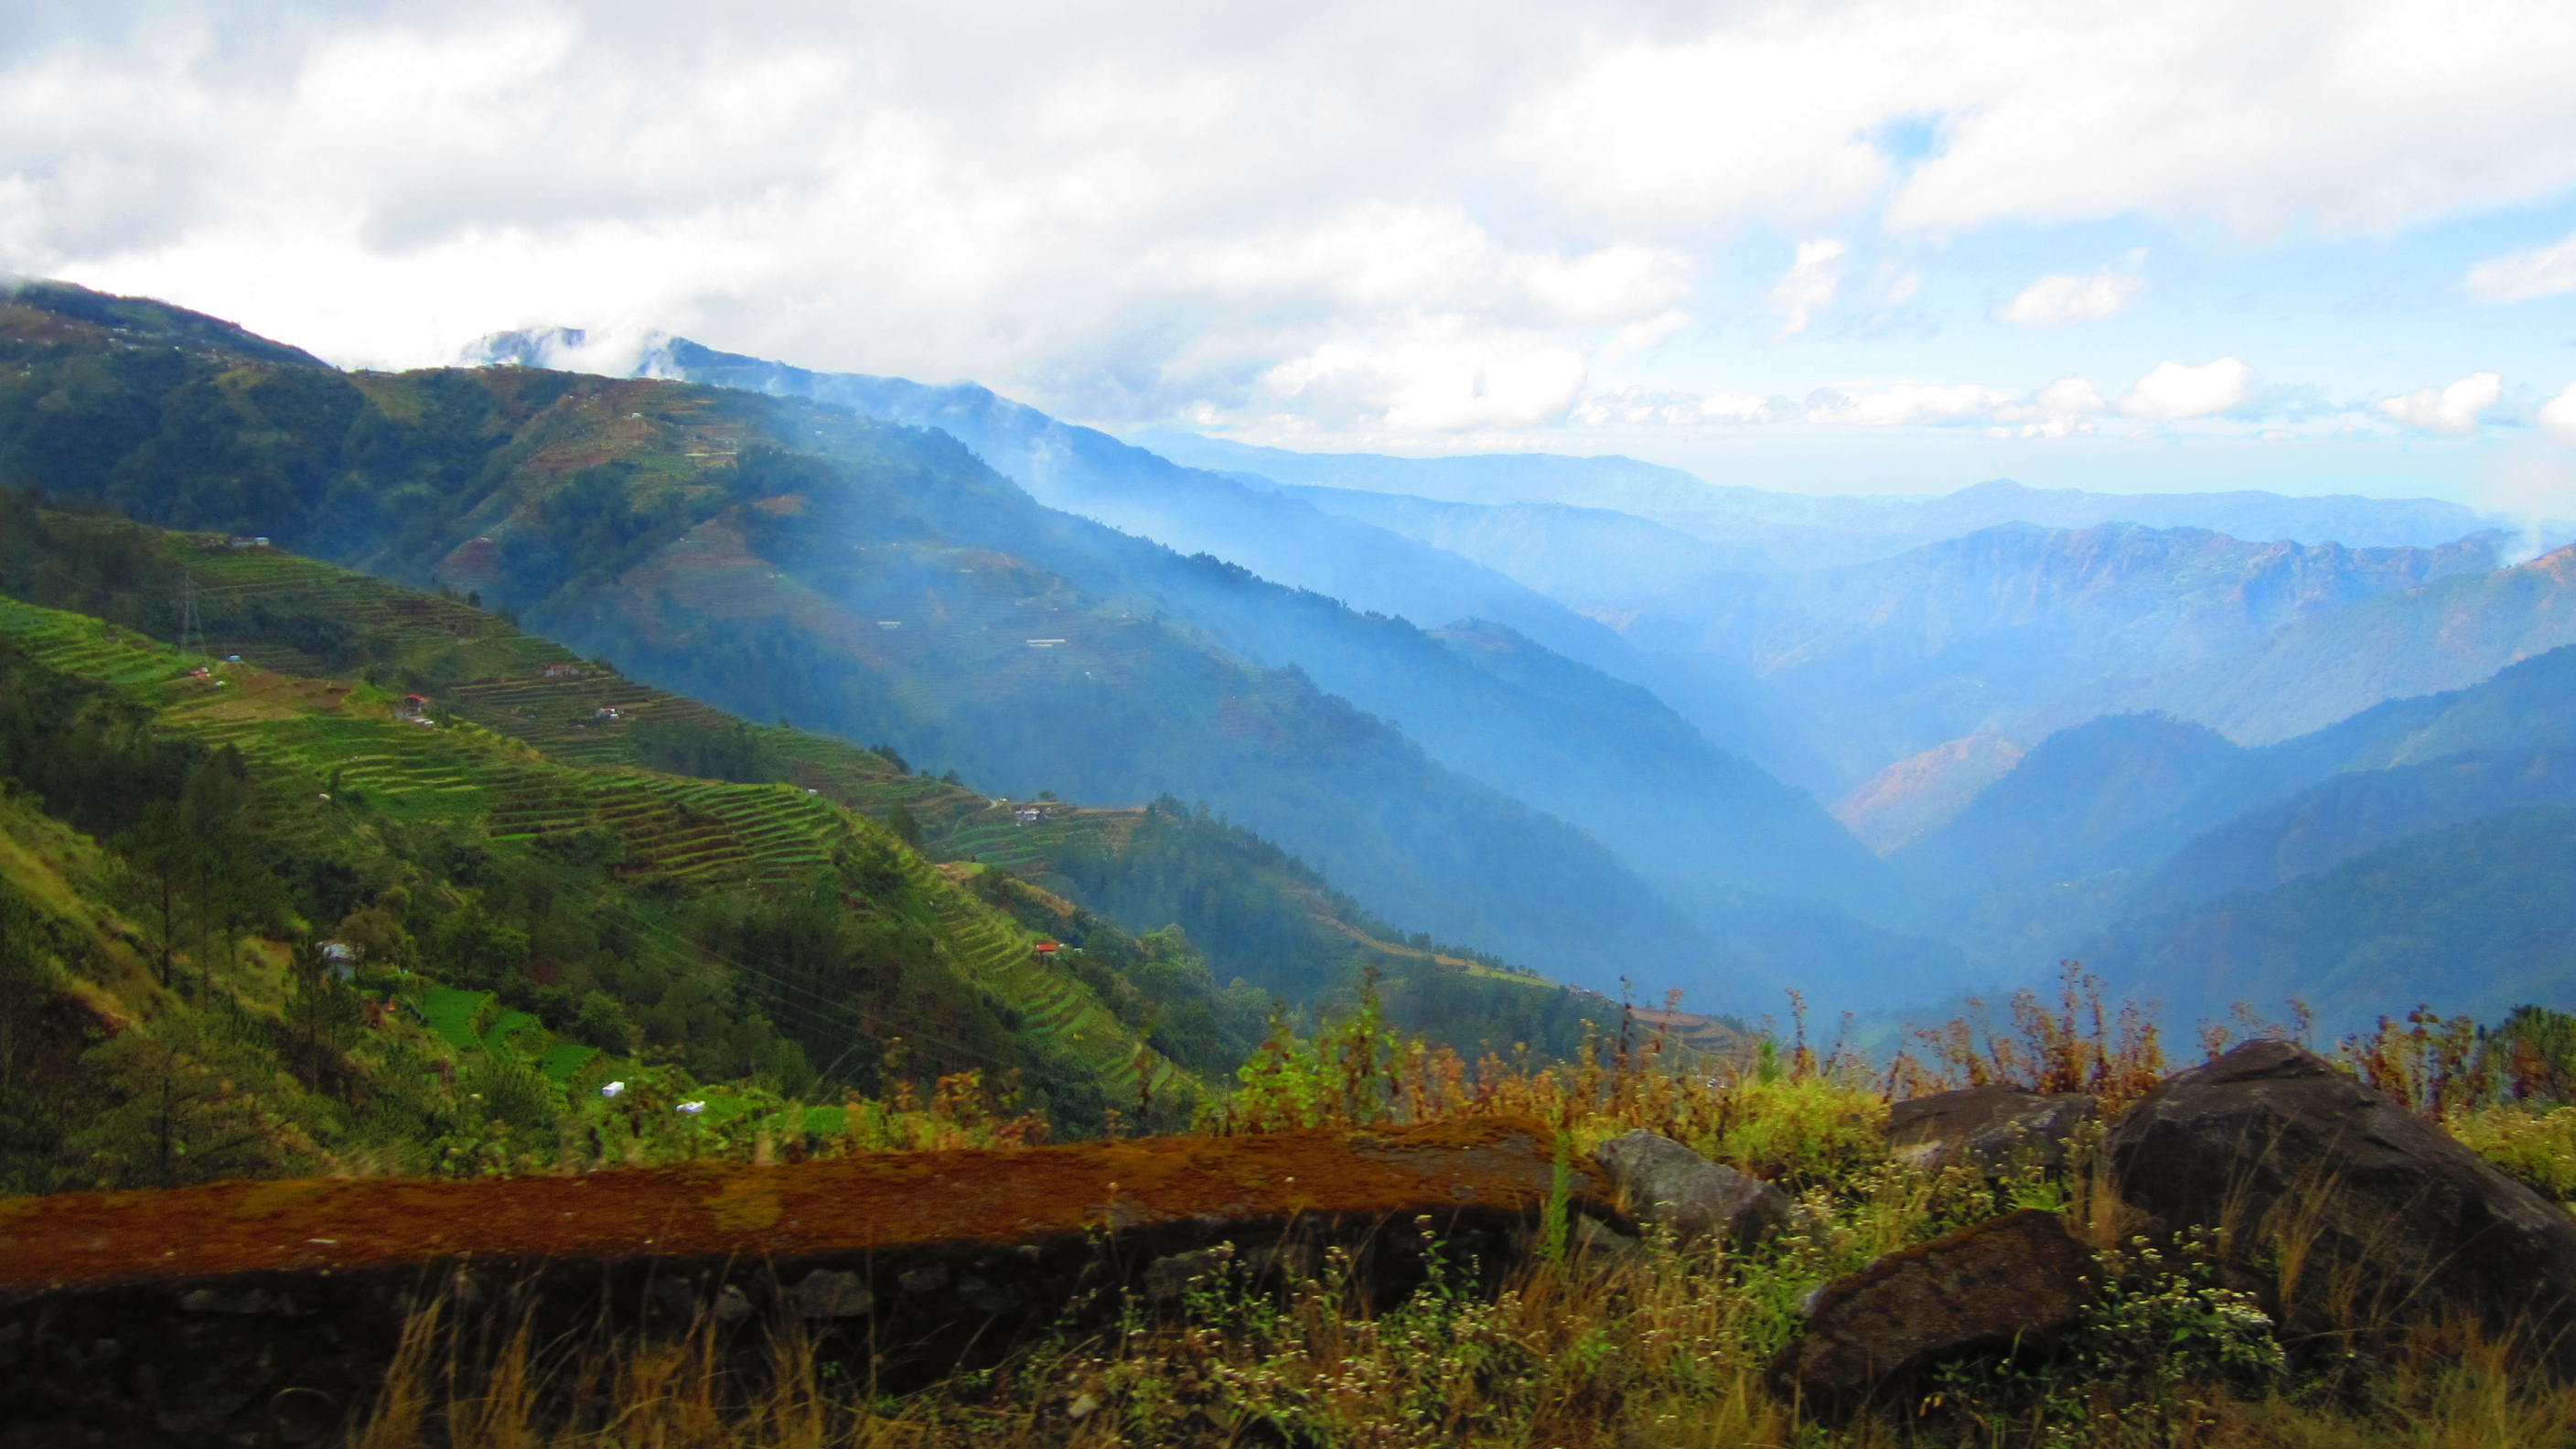 mountain province For many visitors, though, the prime attraction in northern luzon is the mountainous inland cordillera region highlights here include the mountain village of sagada with its caves and hanging coffins, and the stunning rice terraces around banaue and bontoc.